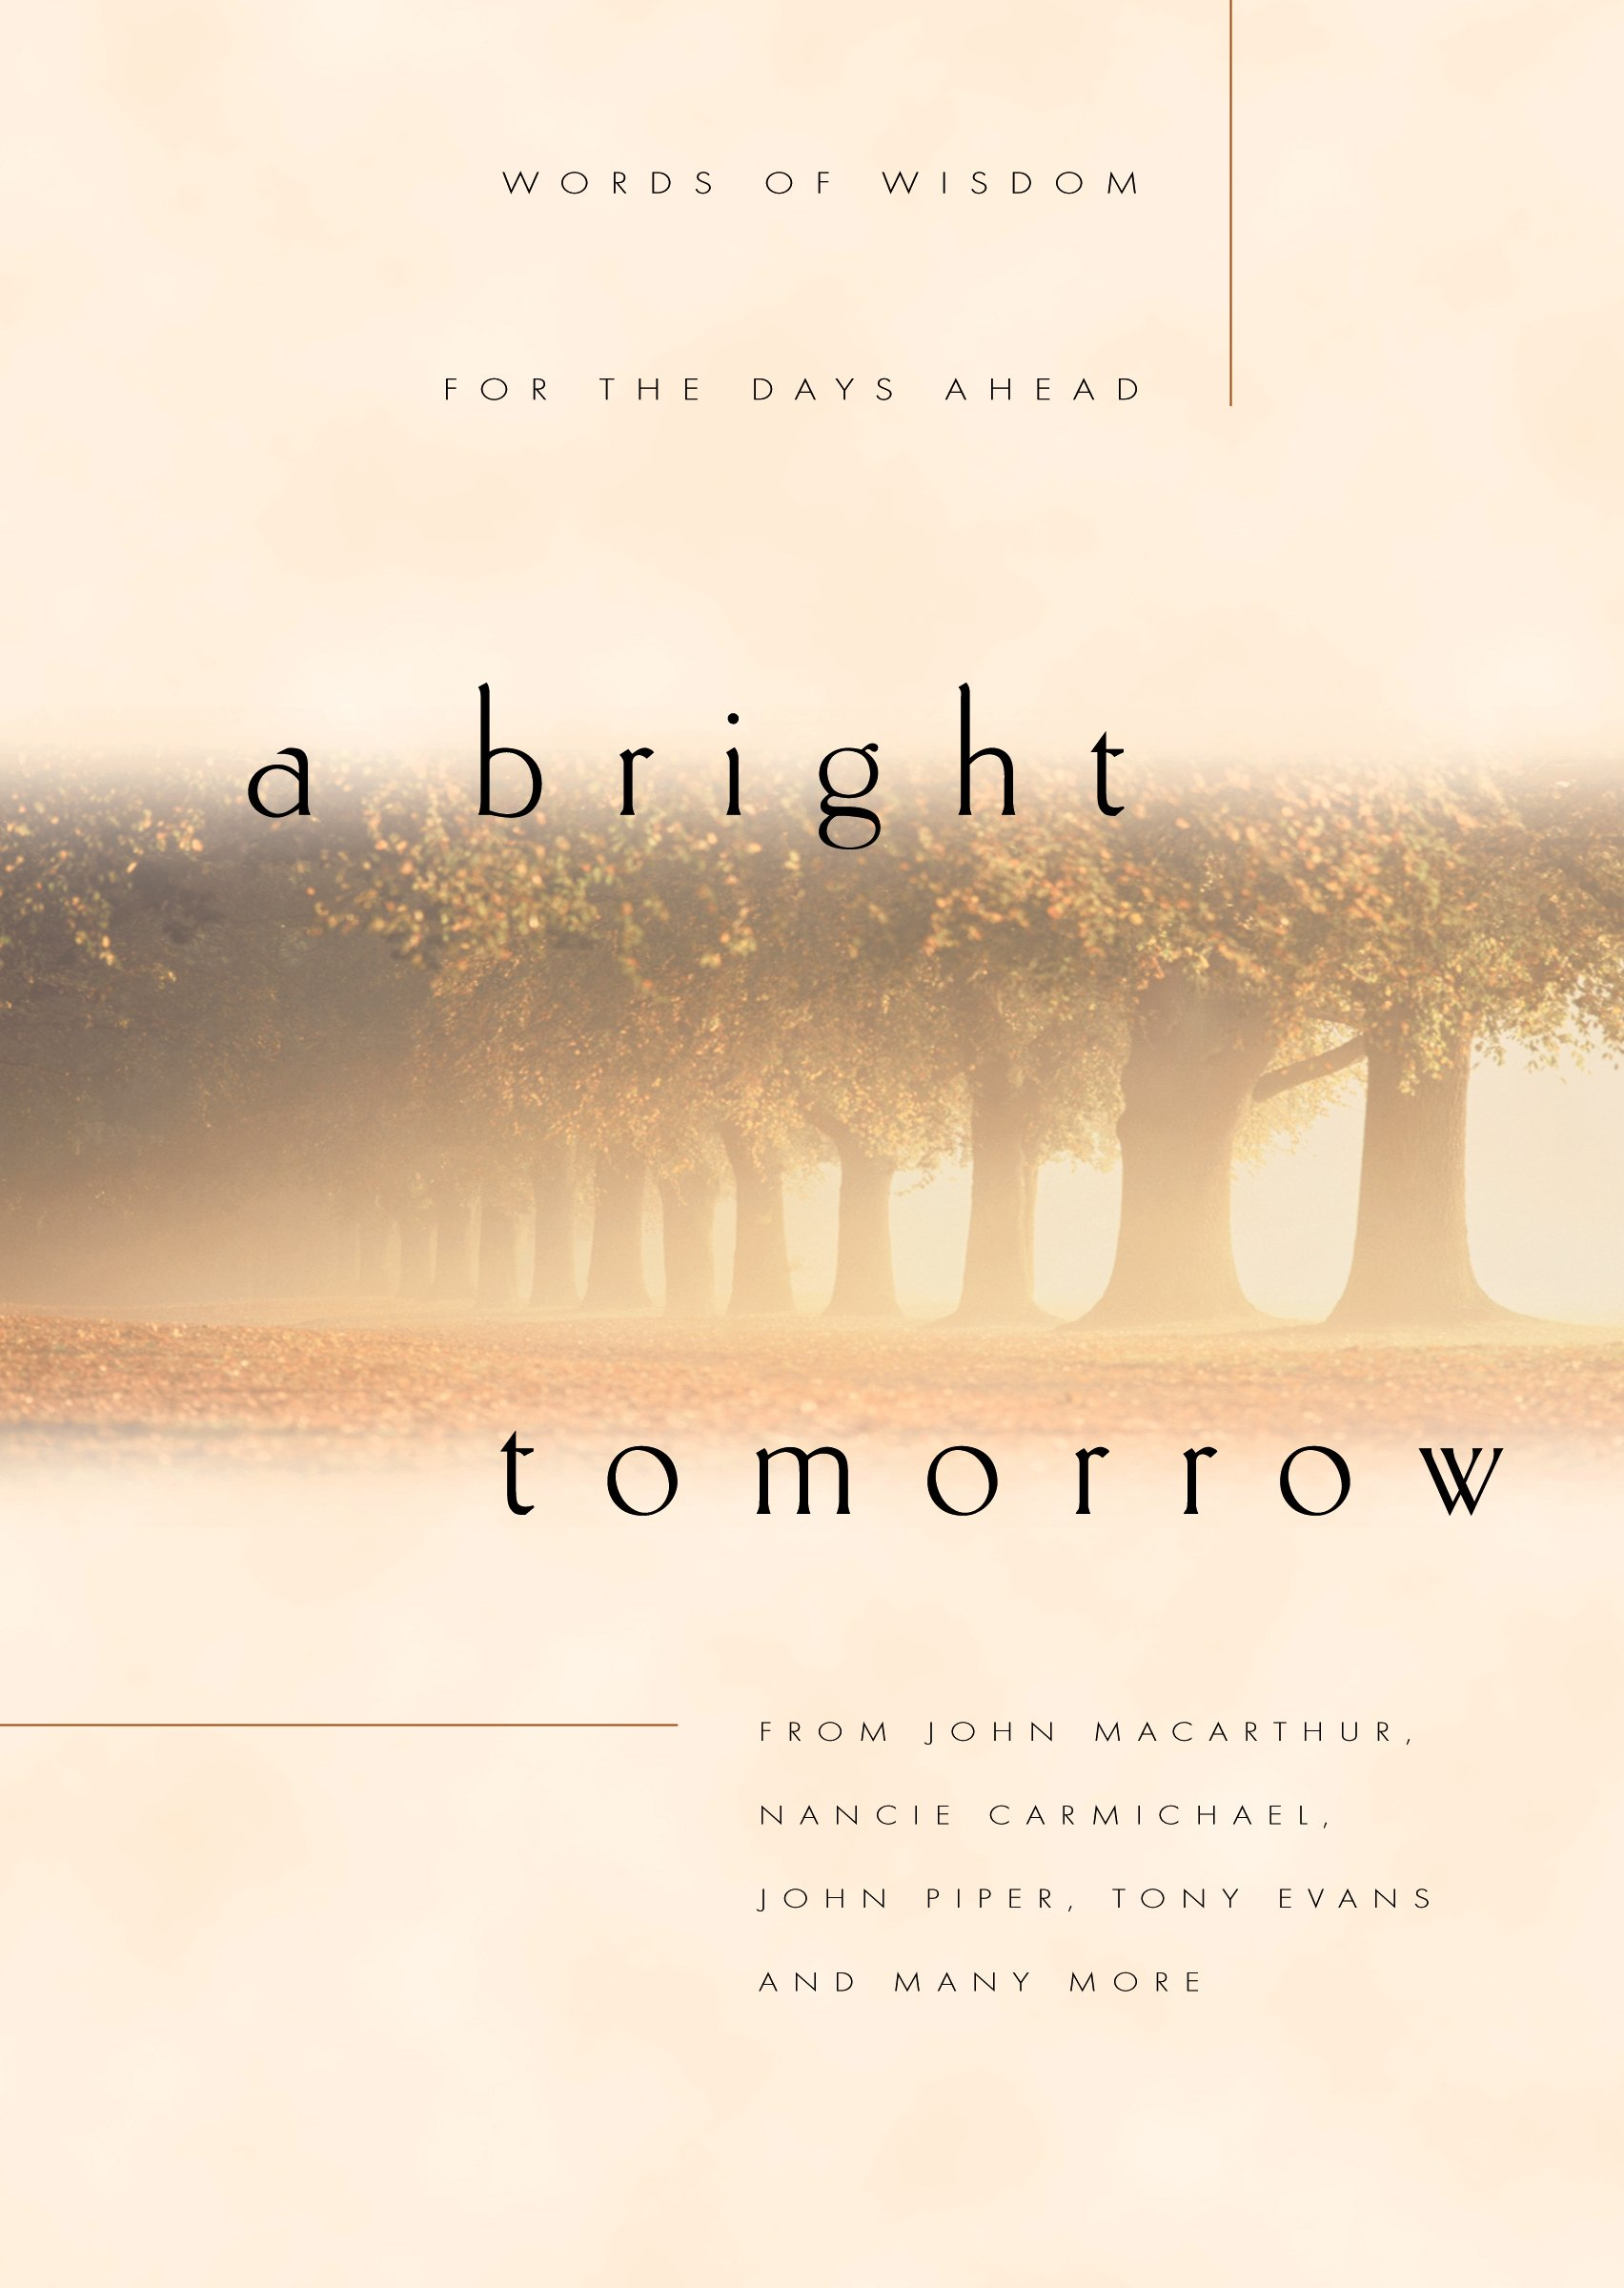 Download A Bright Tomorrow: Words of Wisdom for the Days Ahead pdf